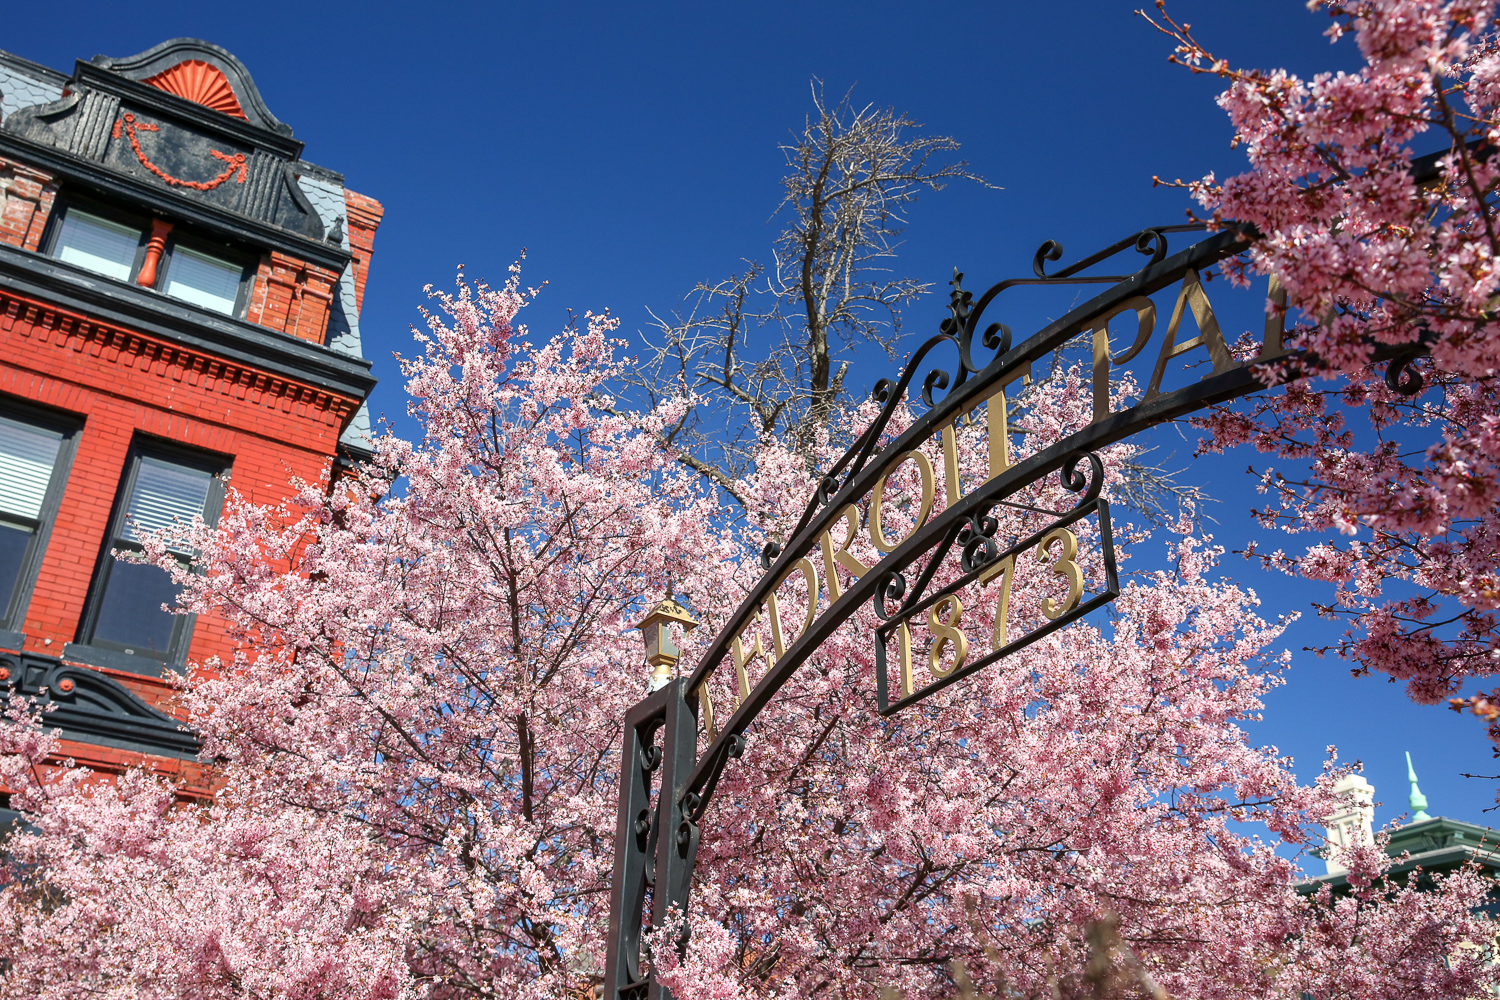 The gate to LeDroit Park on the corner of Florida Avenue NW and 6th Street NW is surrounded by blooming trees right now - ahead of the blooms around the Tidal Basin. The clustered trees are ultra-photogenic. (Amanda Andrade-Rhoades/DC Refined)